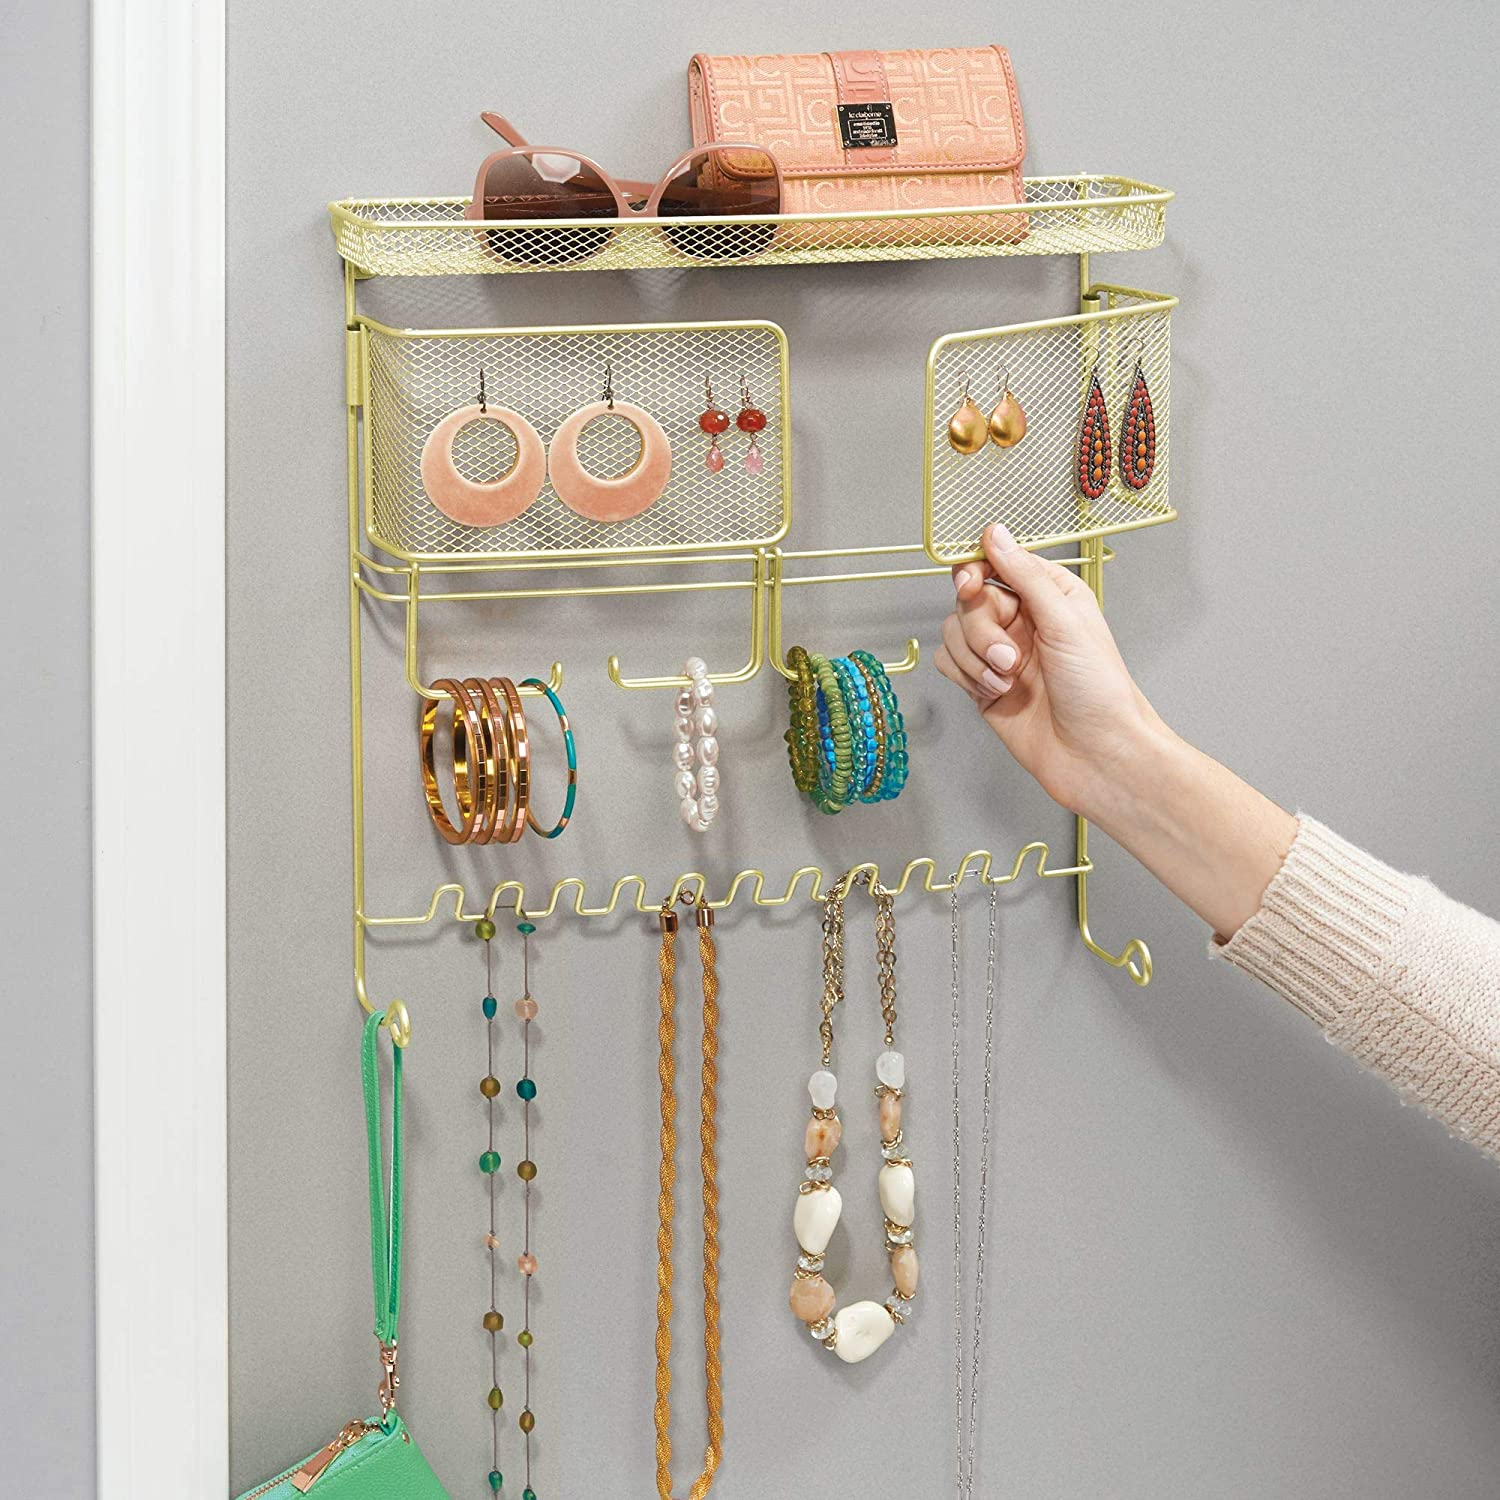 Cash special price Omaha Mall InterDesign 07186 Classico Hanging Fashion for Jewelry Organizer